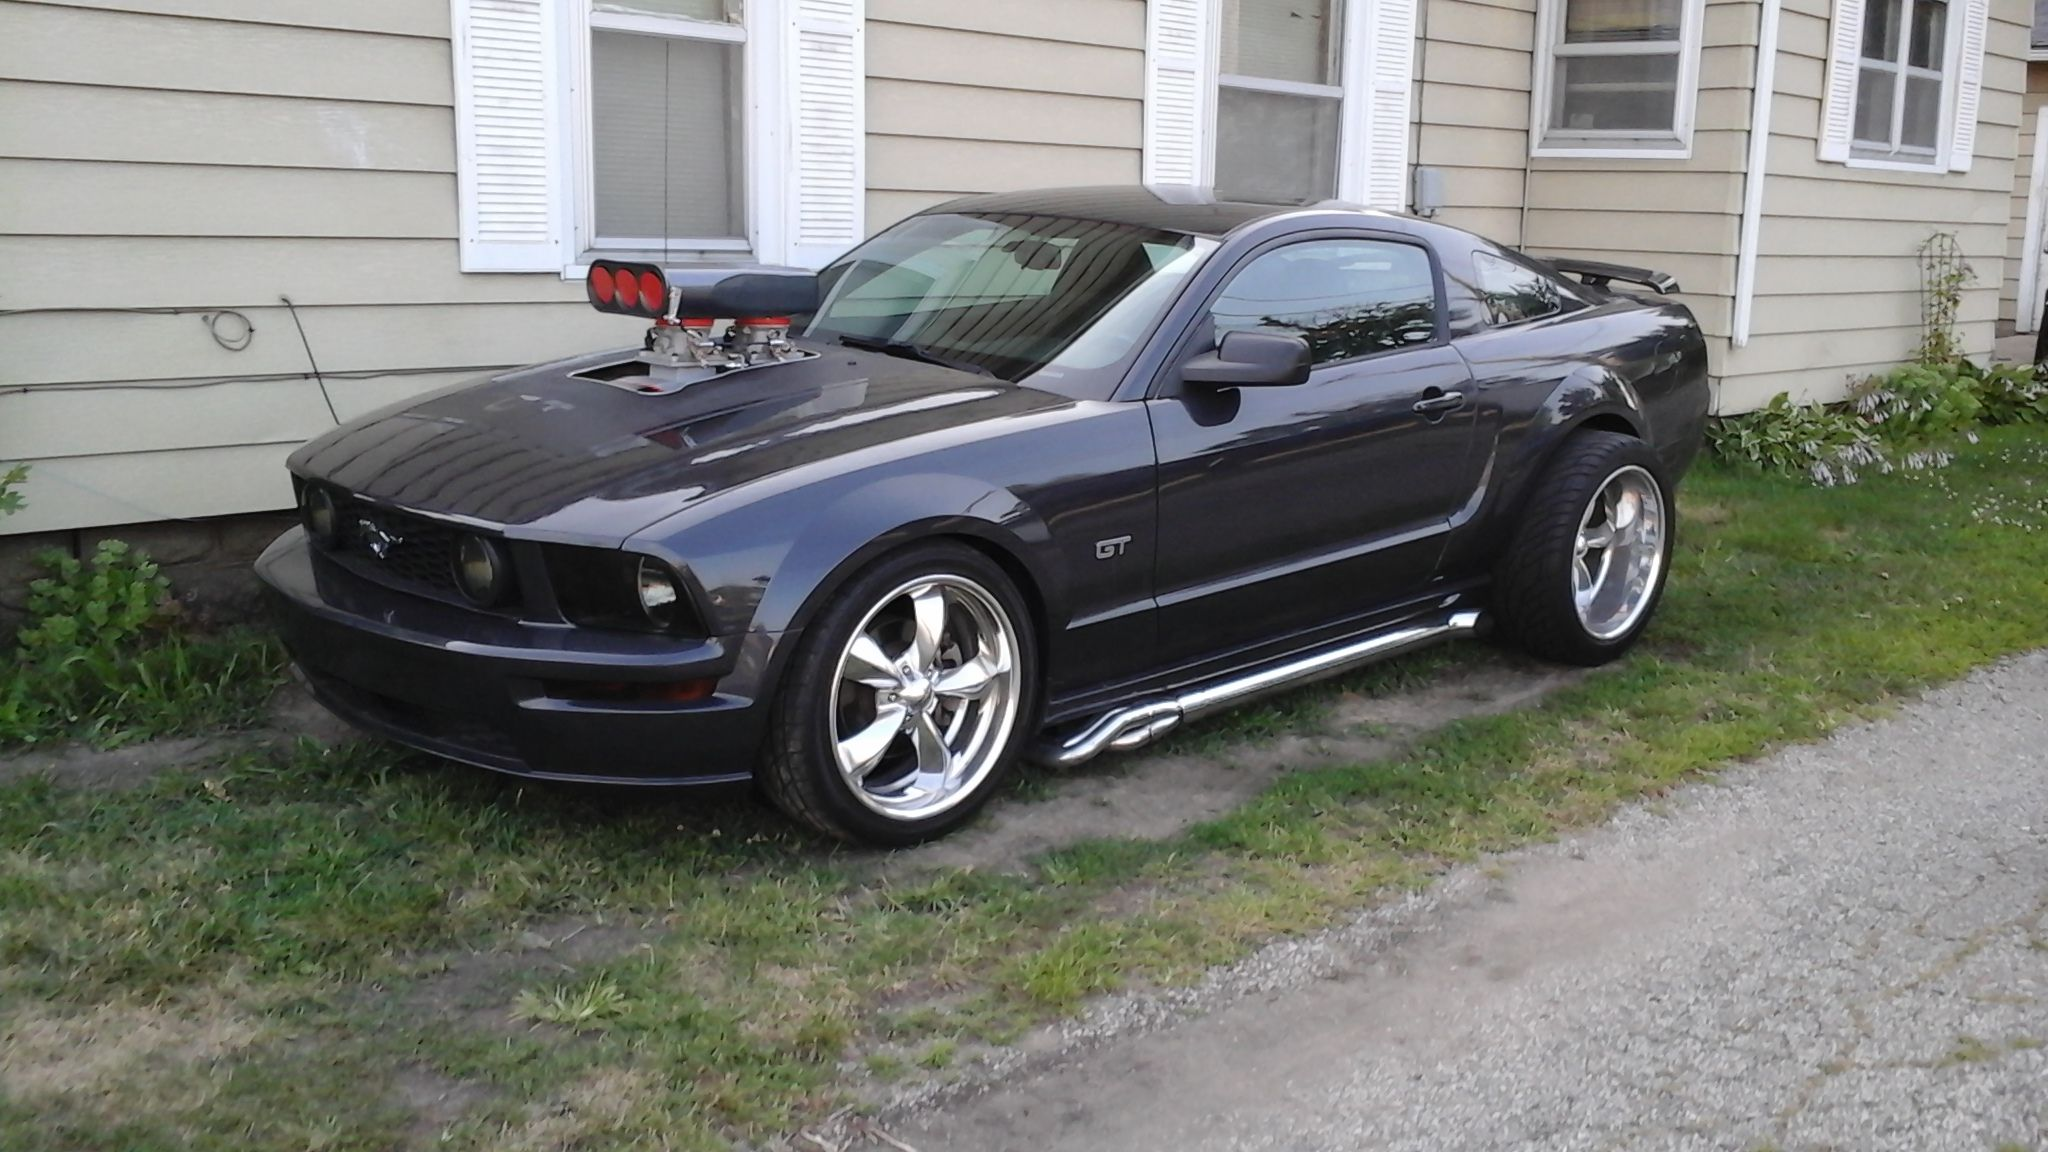 My 2008 Mustang Gt With Lots Of Mods Dream Cars Mustang 2014